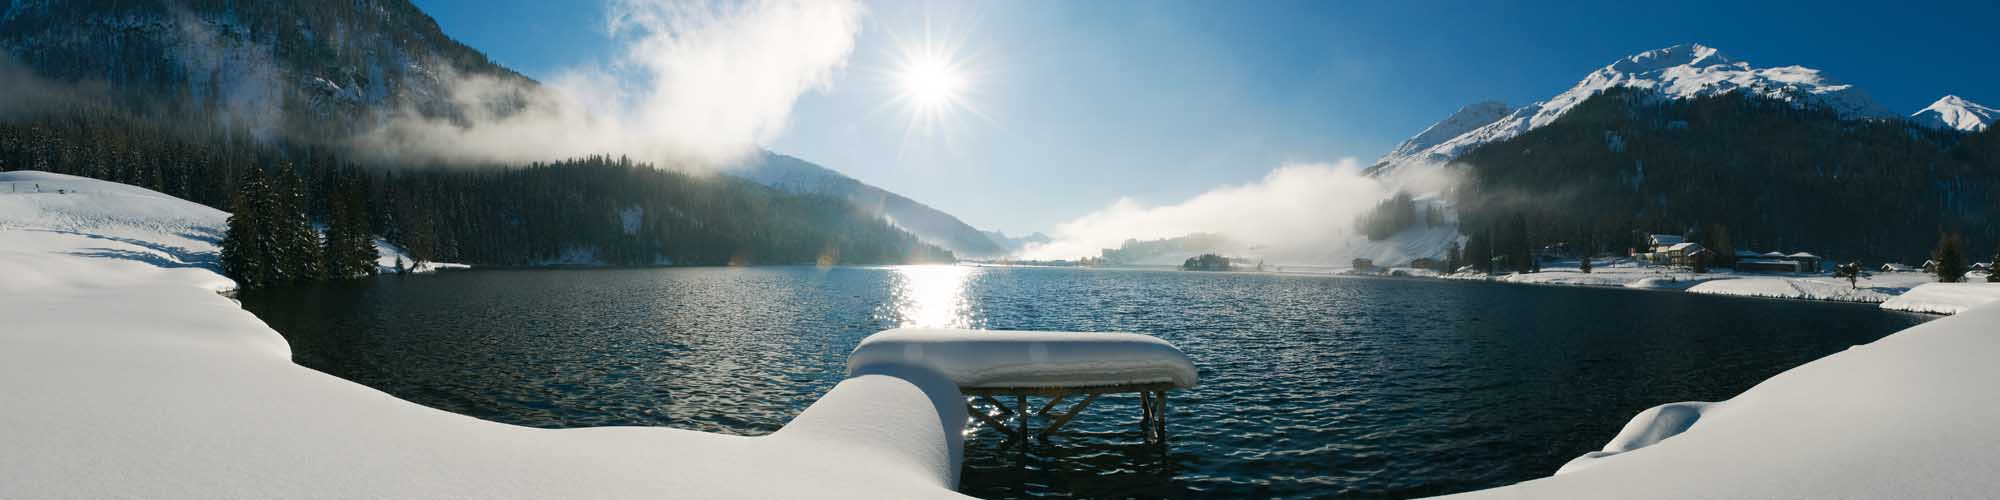 Hotel Davos - Take a time out - and enjoy the stay